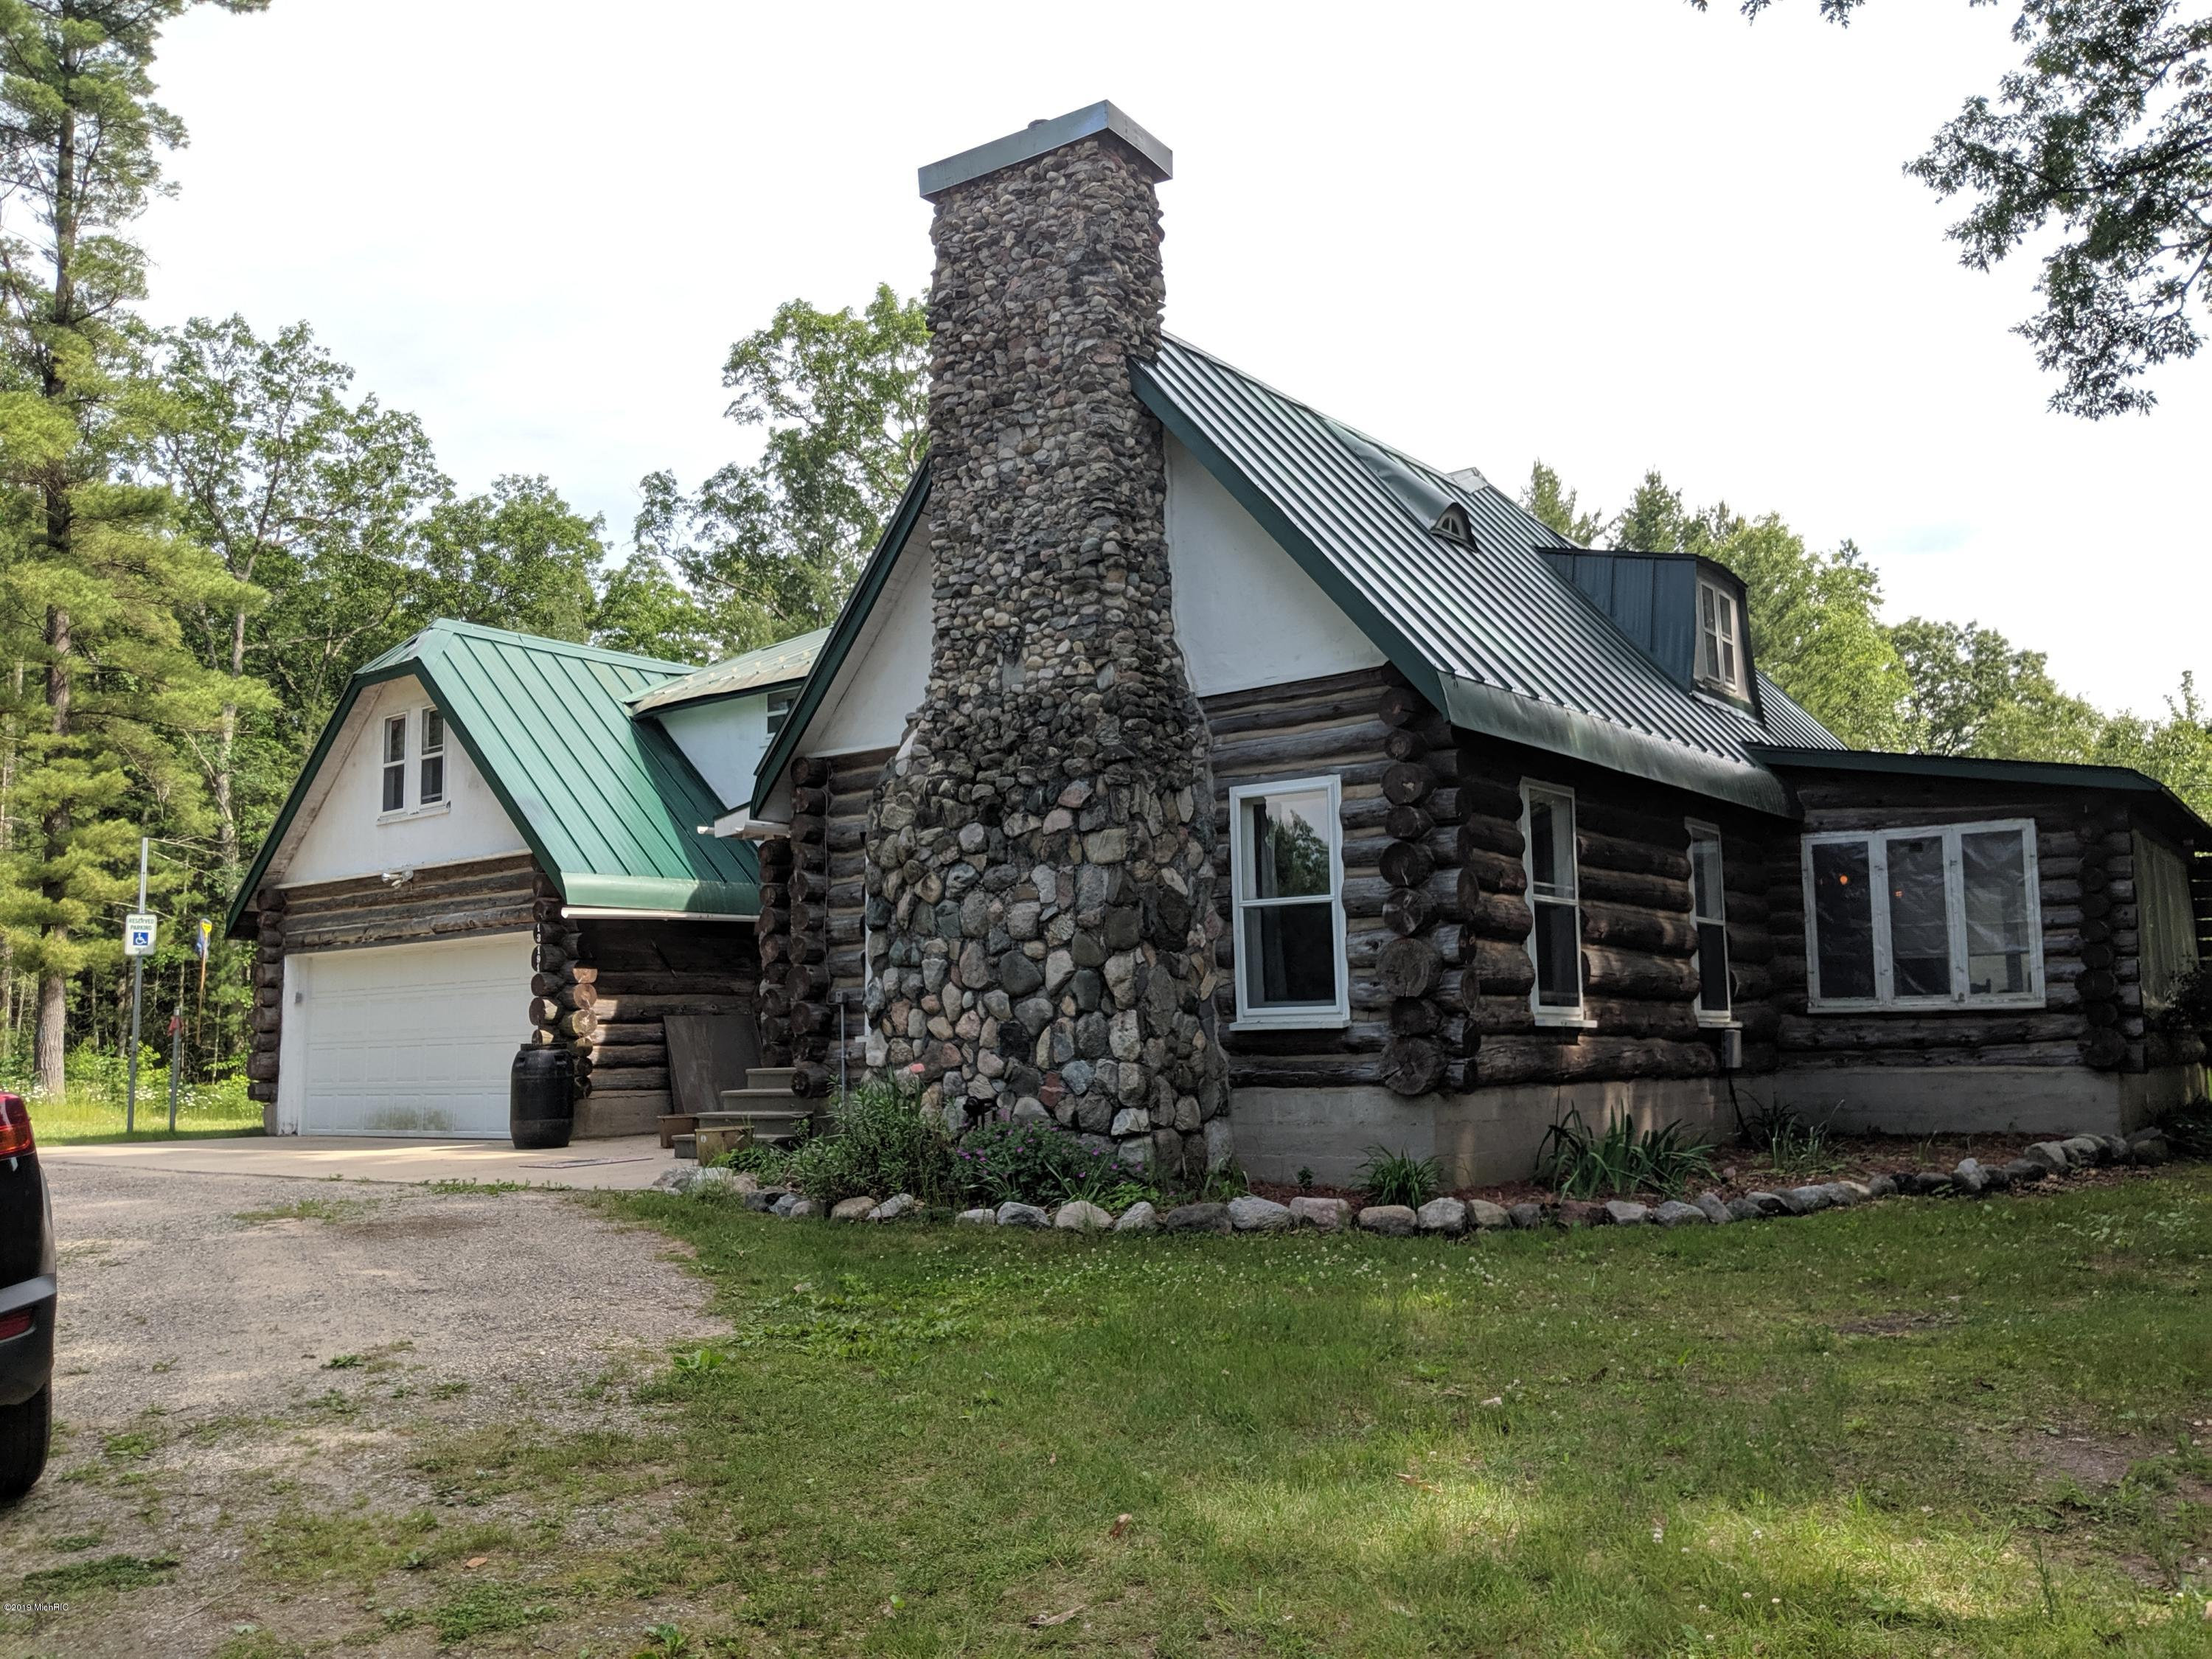 Northwest Michigan Log Homes - Michigan Log Homes For Sale